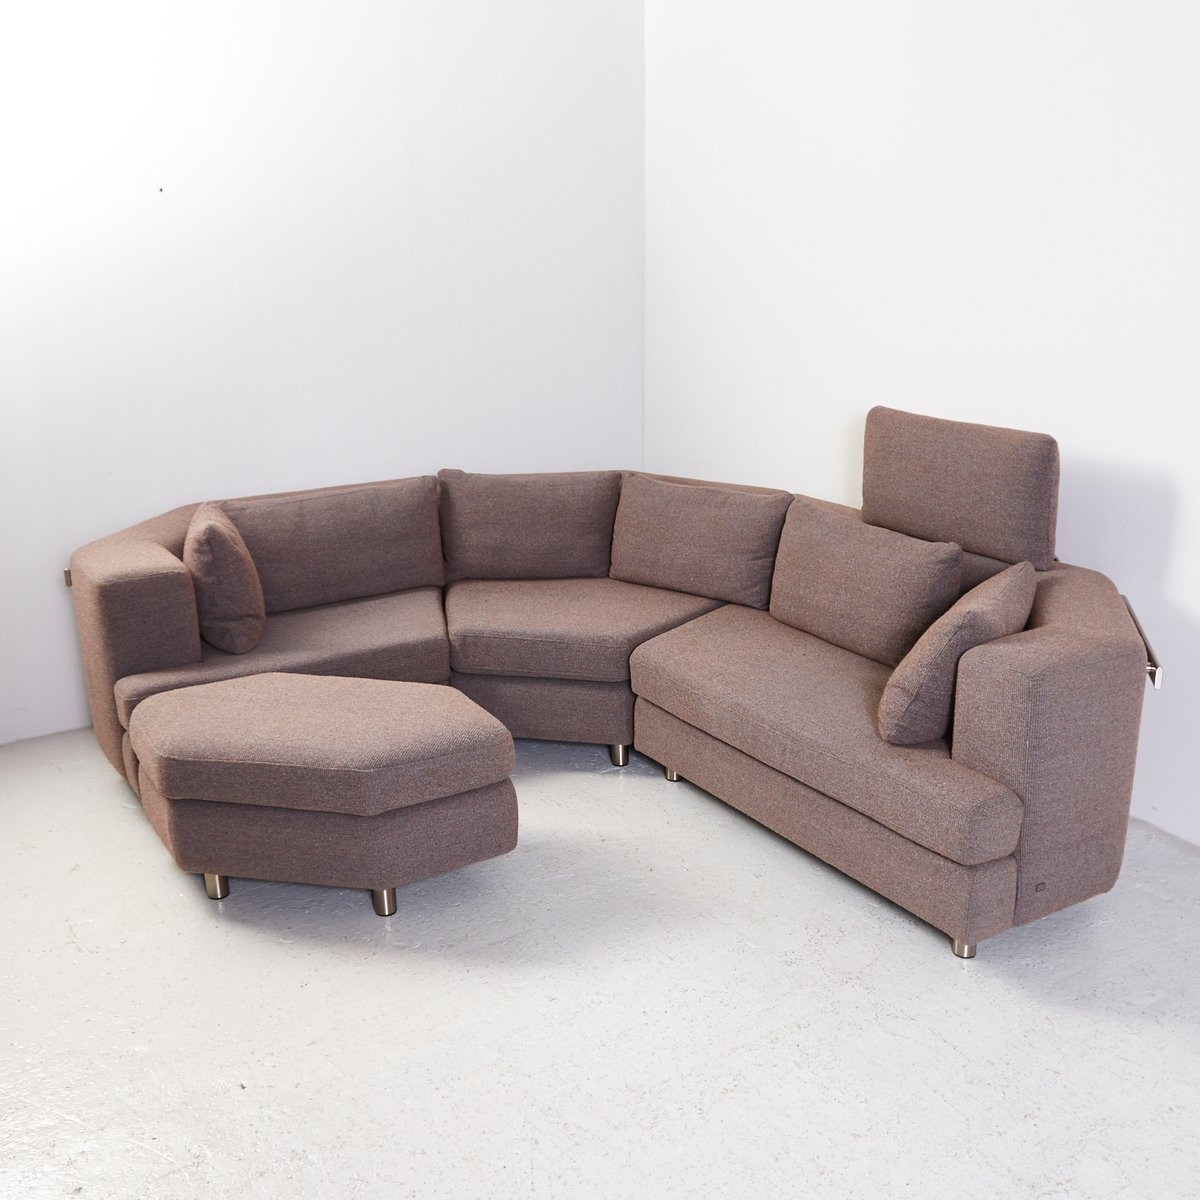 Rolf Benz Modular Sofa 222 Model 200 Leather Modular Sofa From Rolf Benz 1970s For